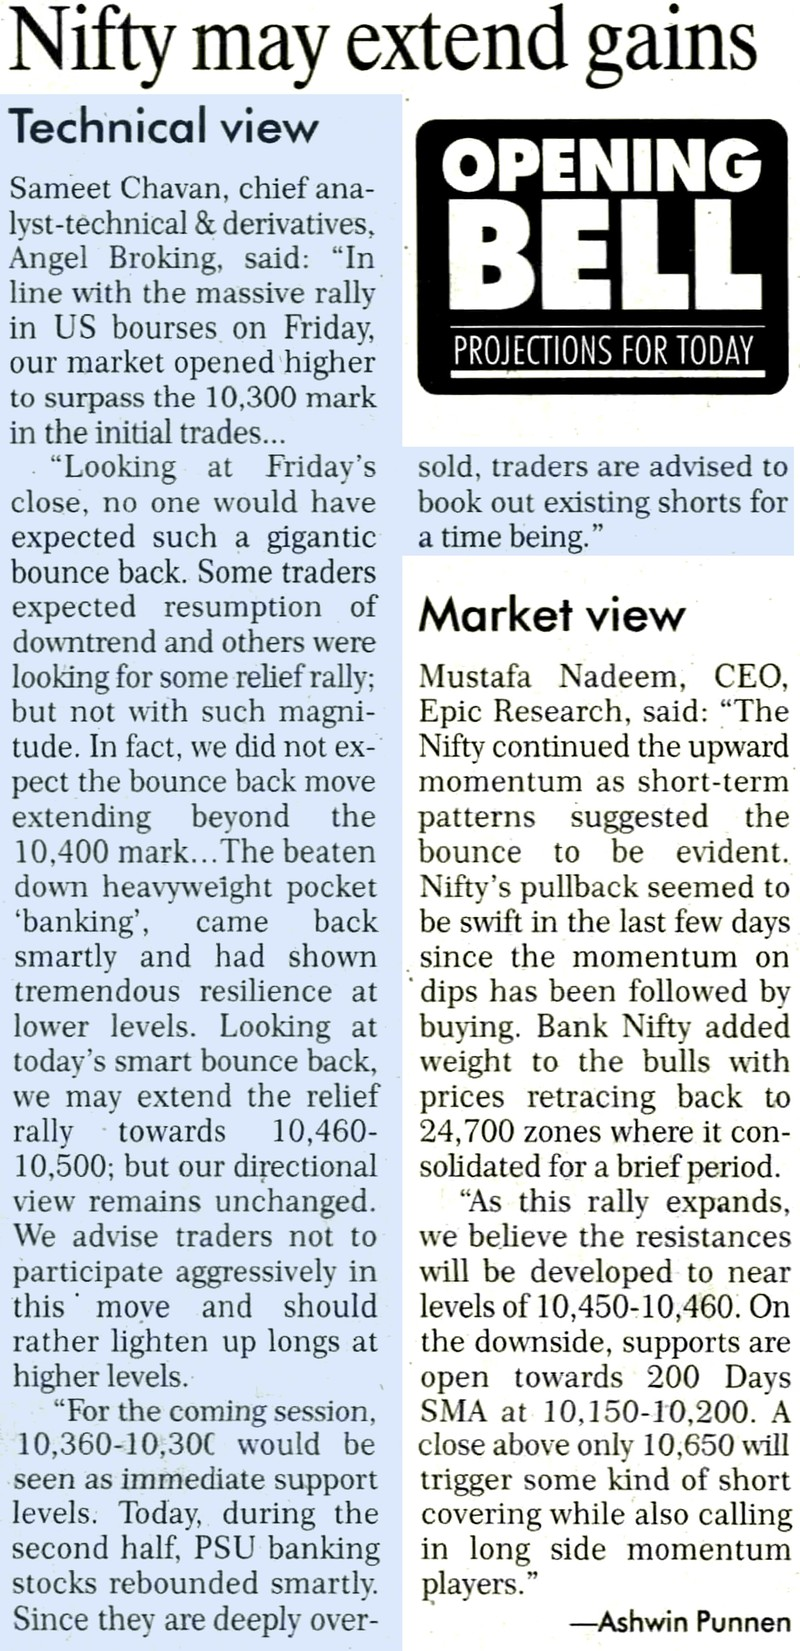 Nifty may extend gains